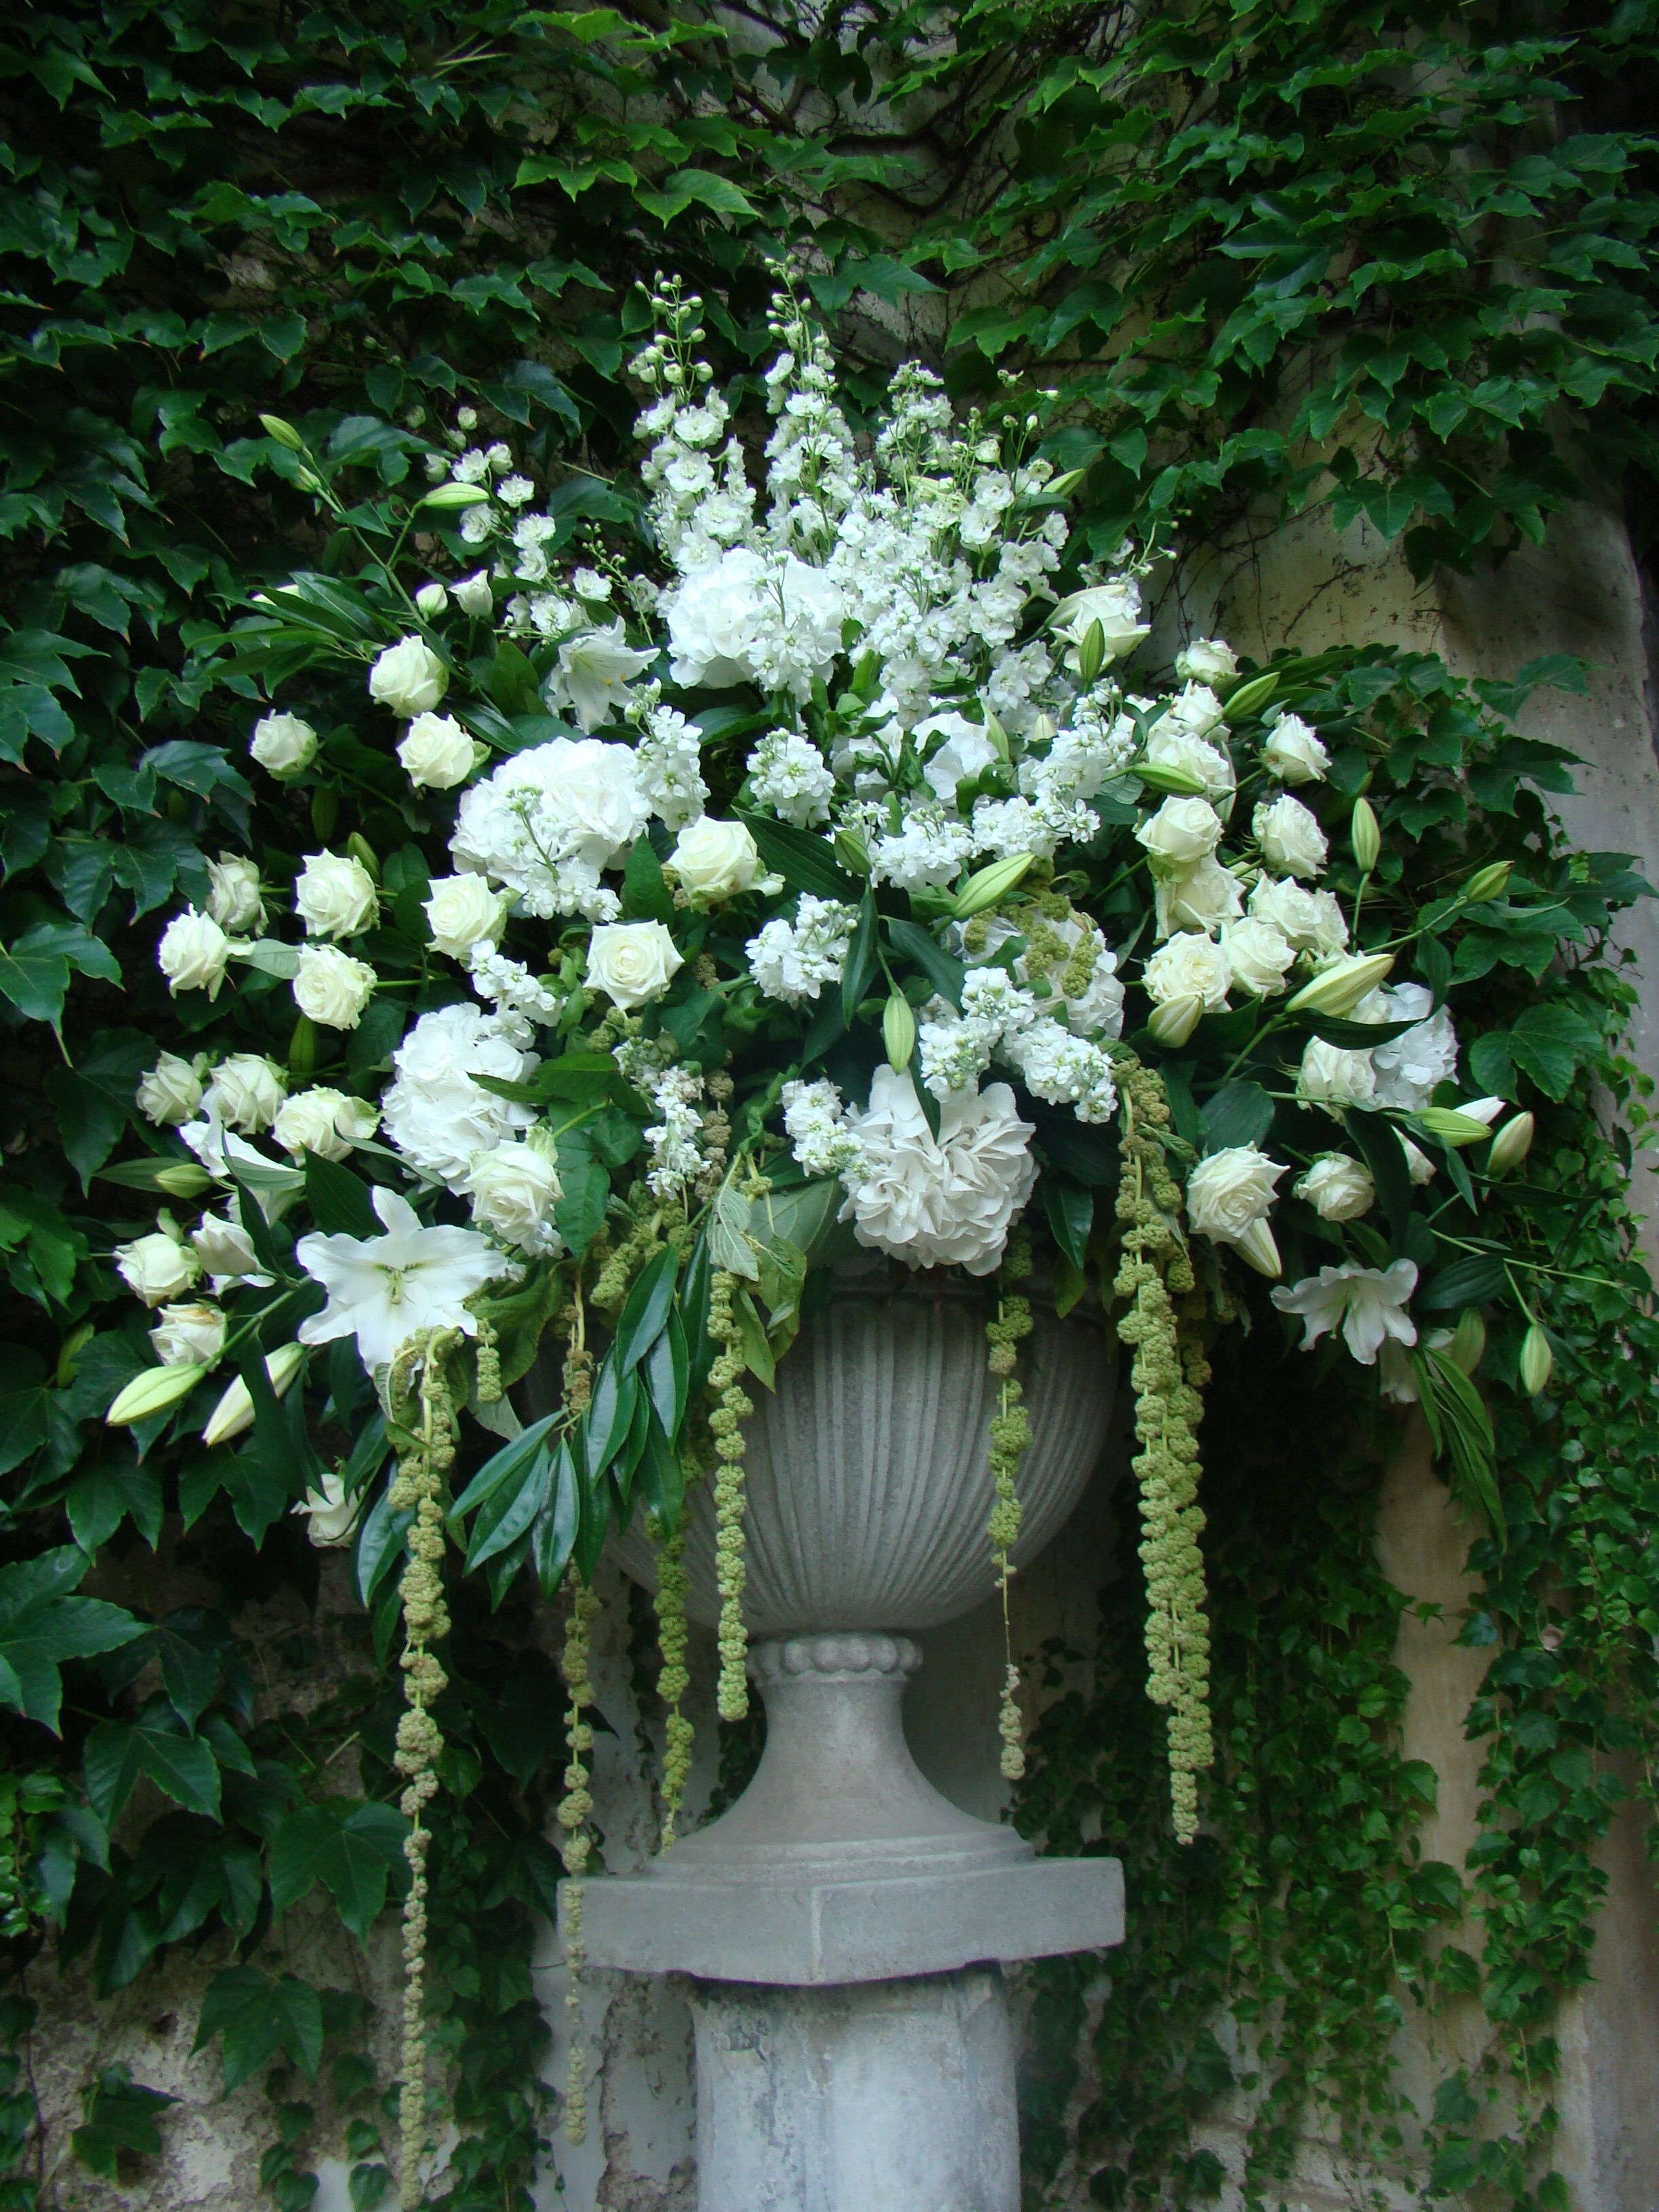 Urn with white roses, stocks, delphiniums, hydrangeas and